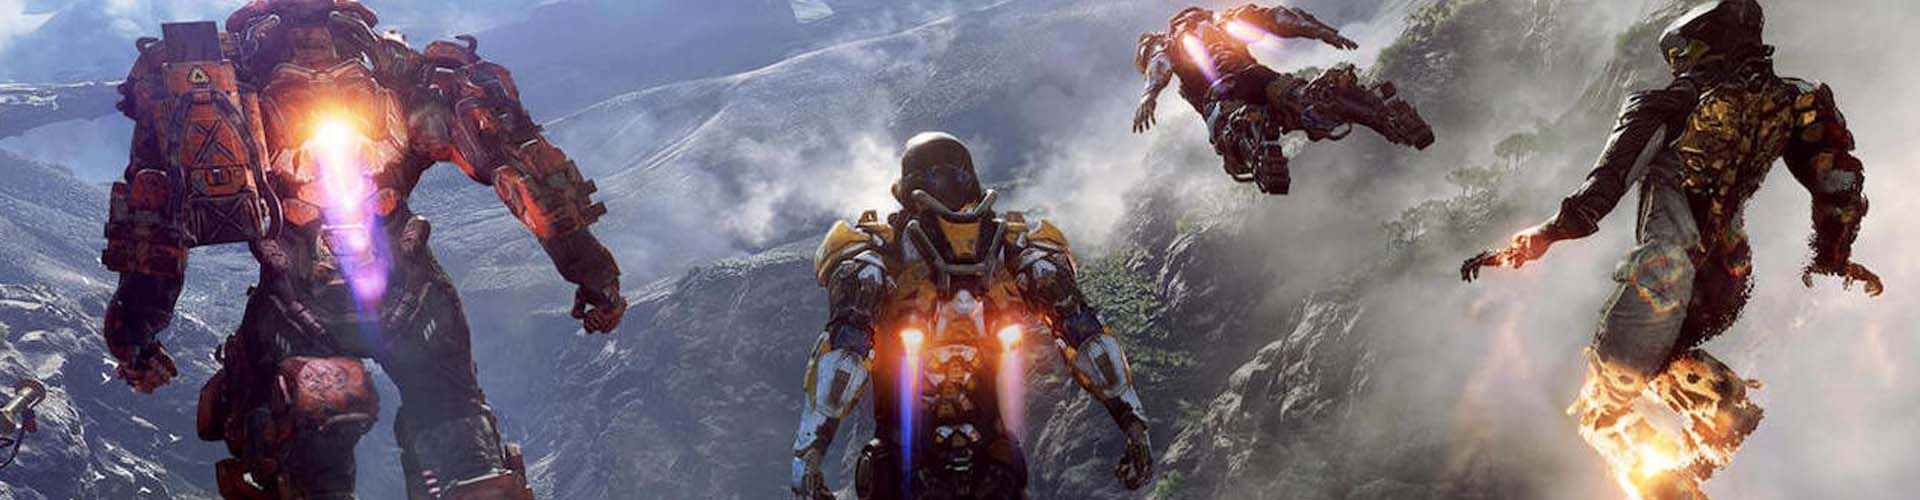 Anthem Review: Hands-On